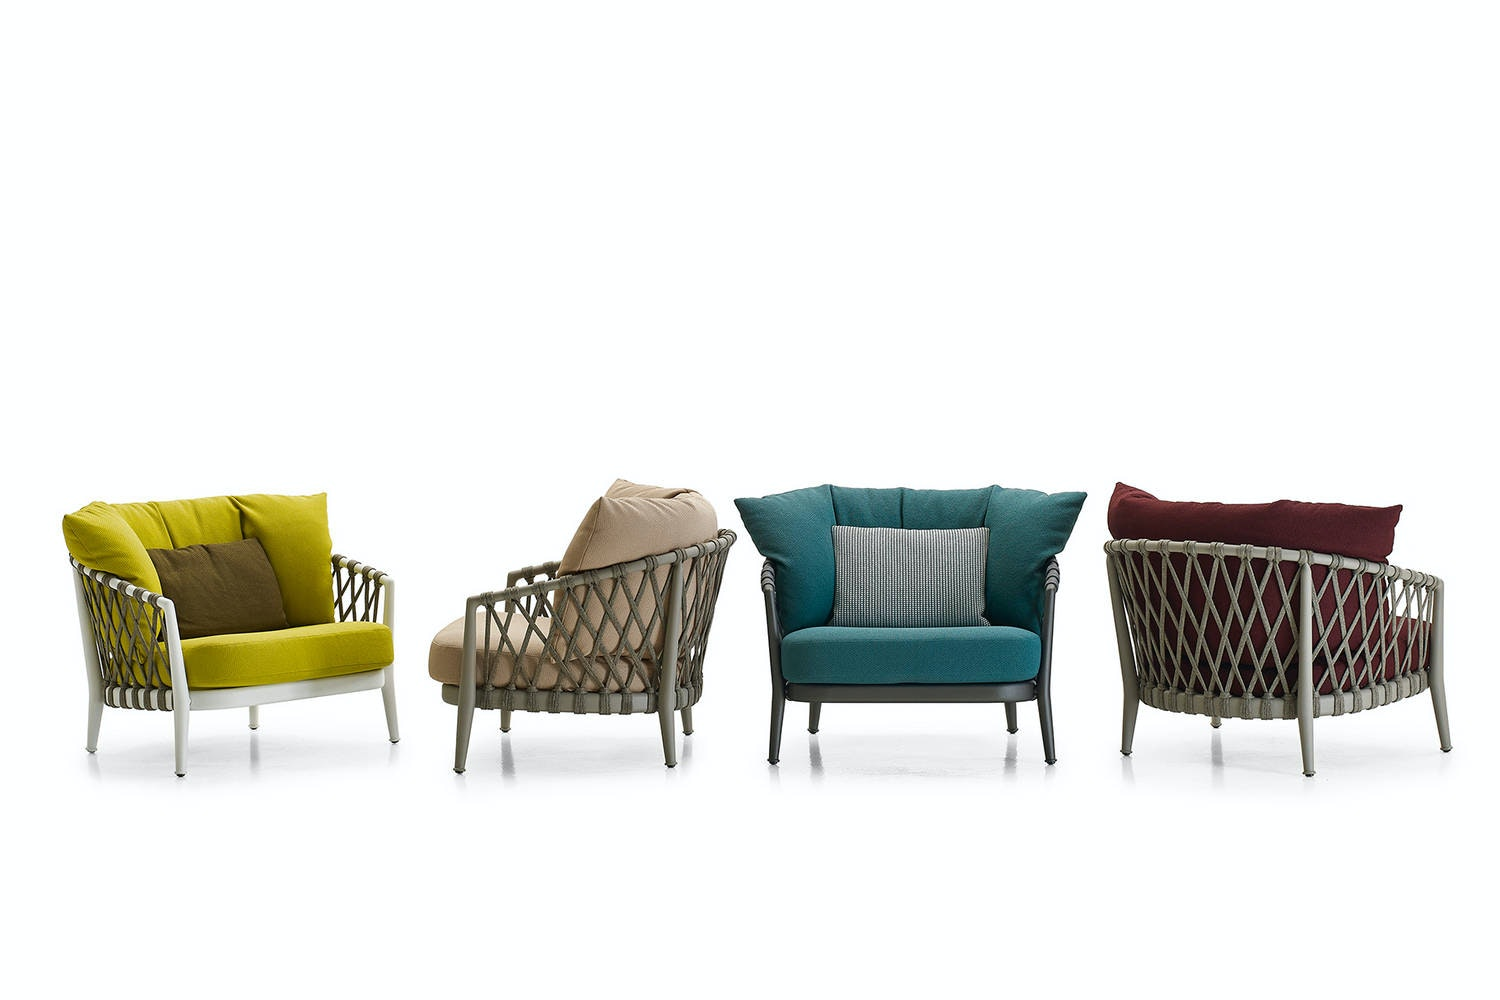 Erica Armchair by Antonio Citterio for B&B Italia